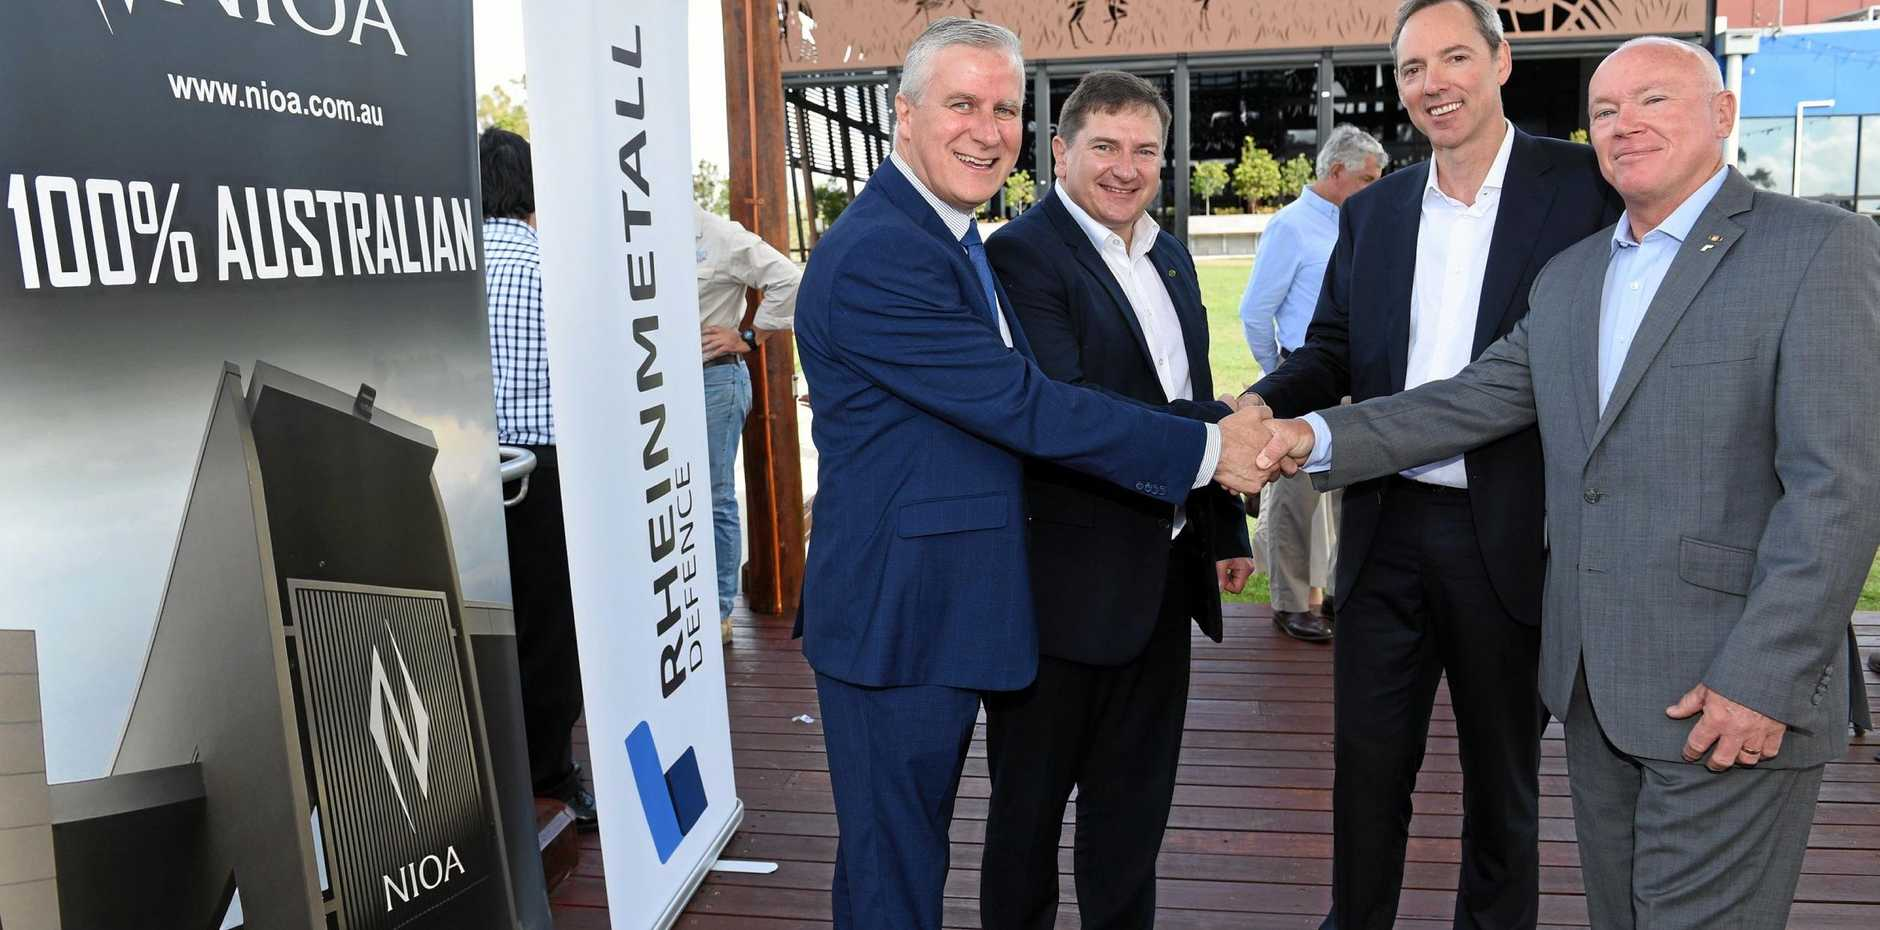 WELCOME BOOST: Deputy PM Michael McCormack, Federal Member for Wide Bay Llew O'Brien, NIOA managing director Rob Nioa and Rheinmetall director Rod West at the munitions factory funding announcement.